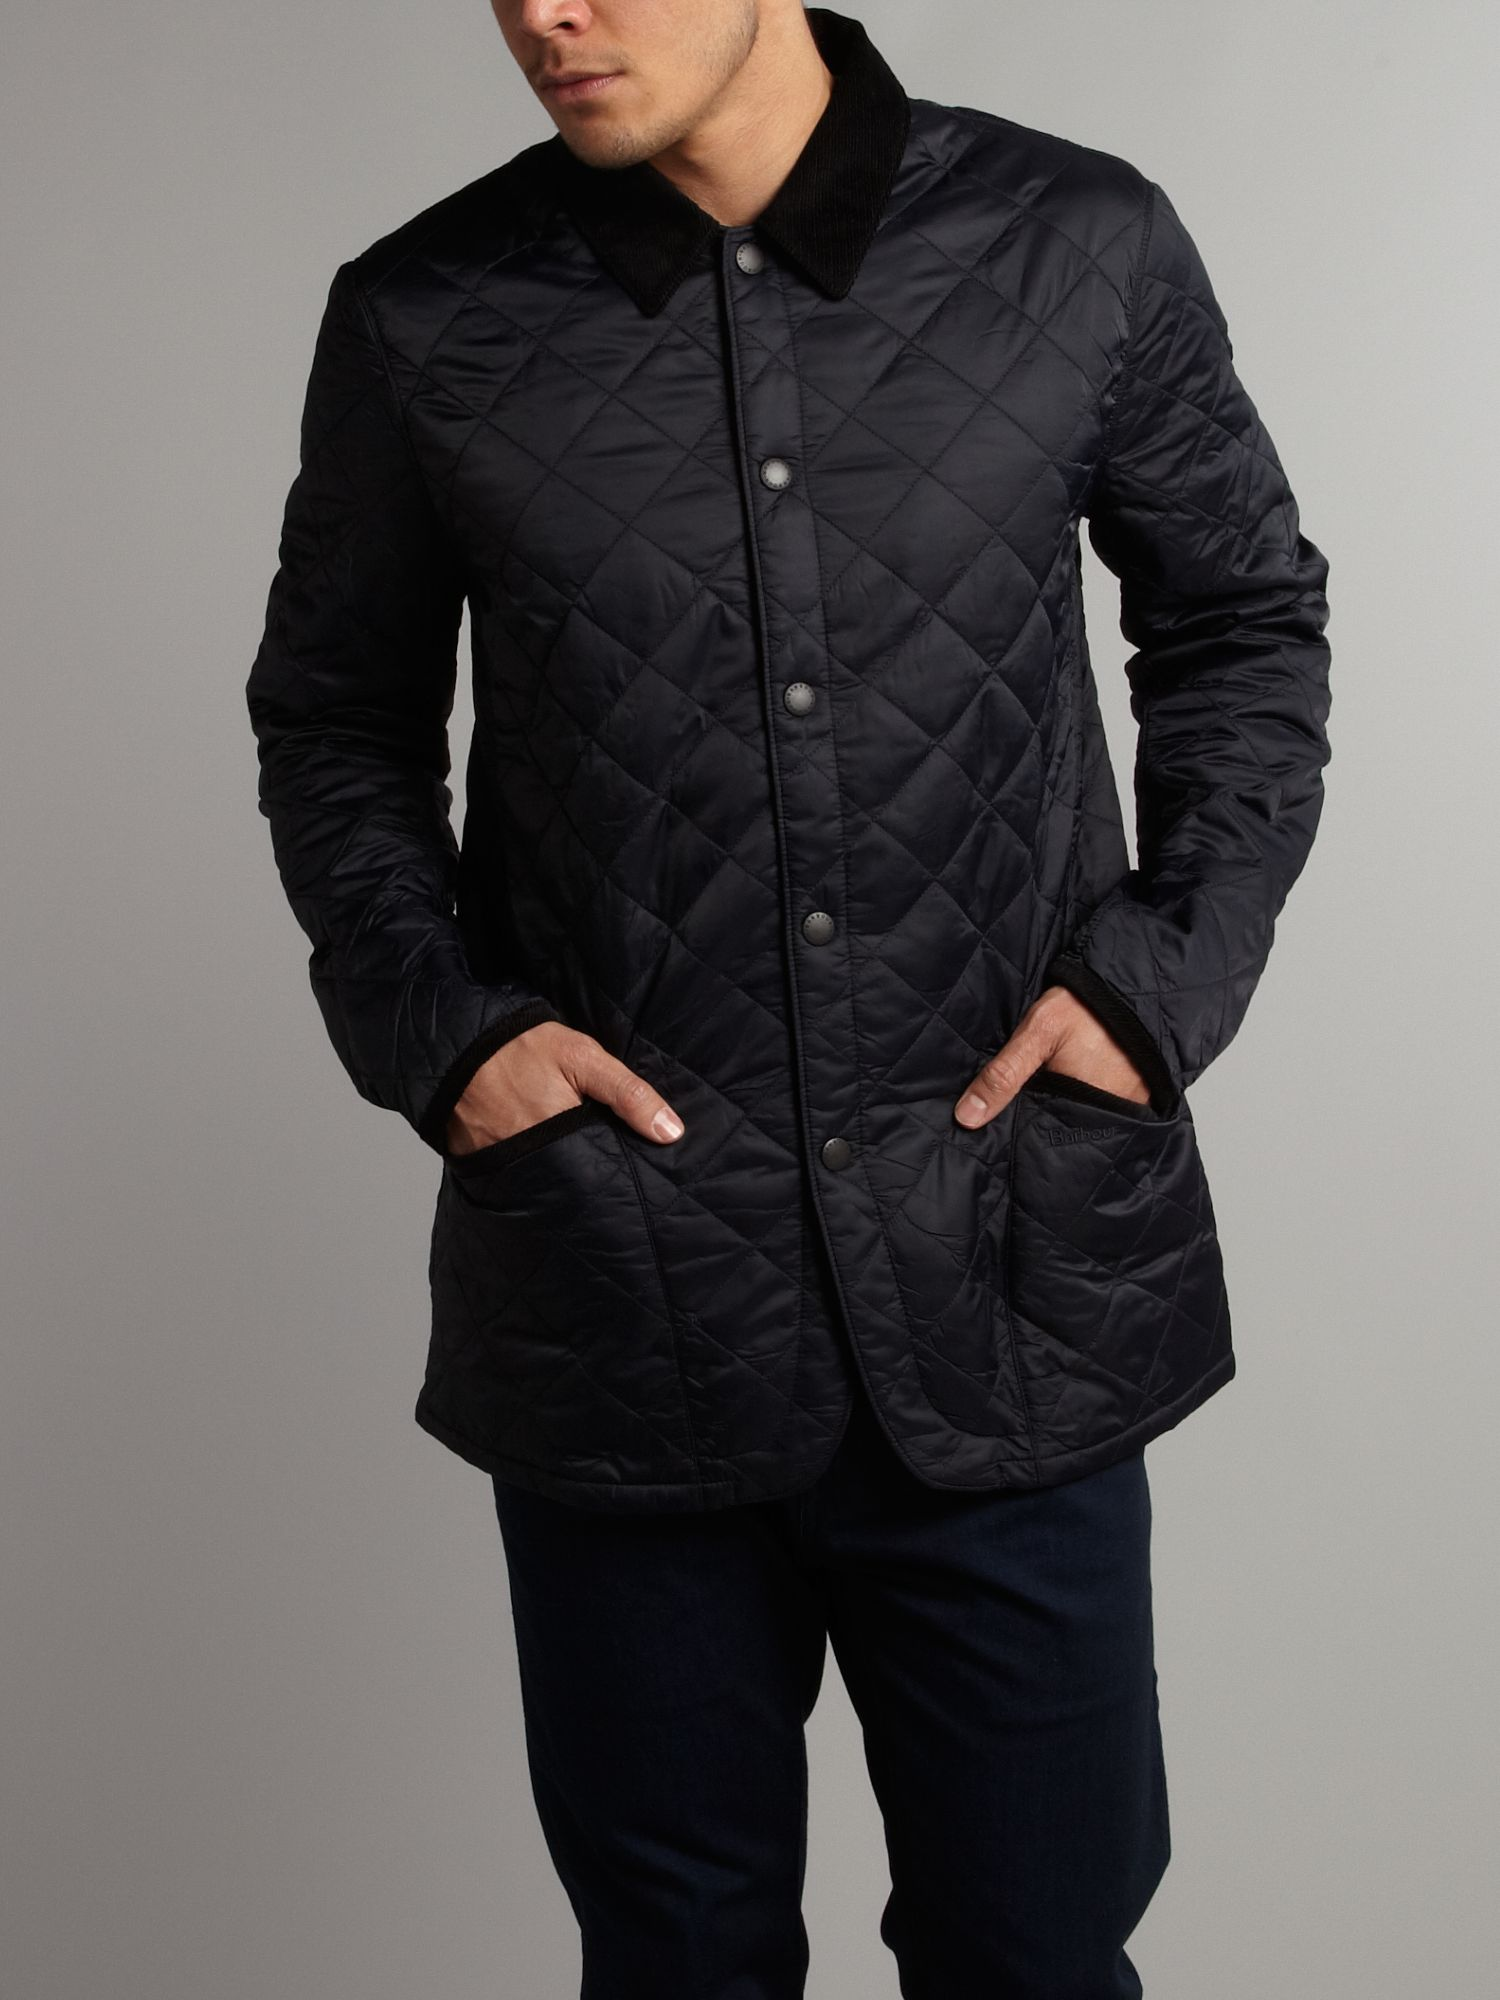 Conway tailored quilted padded jacket